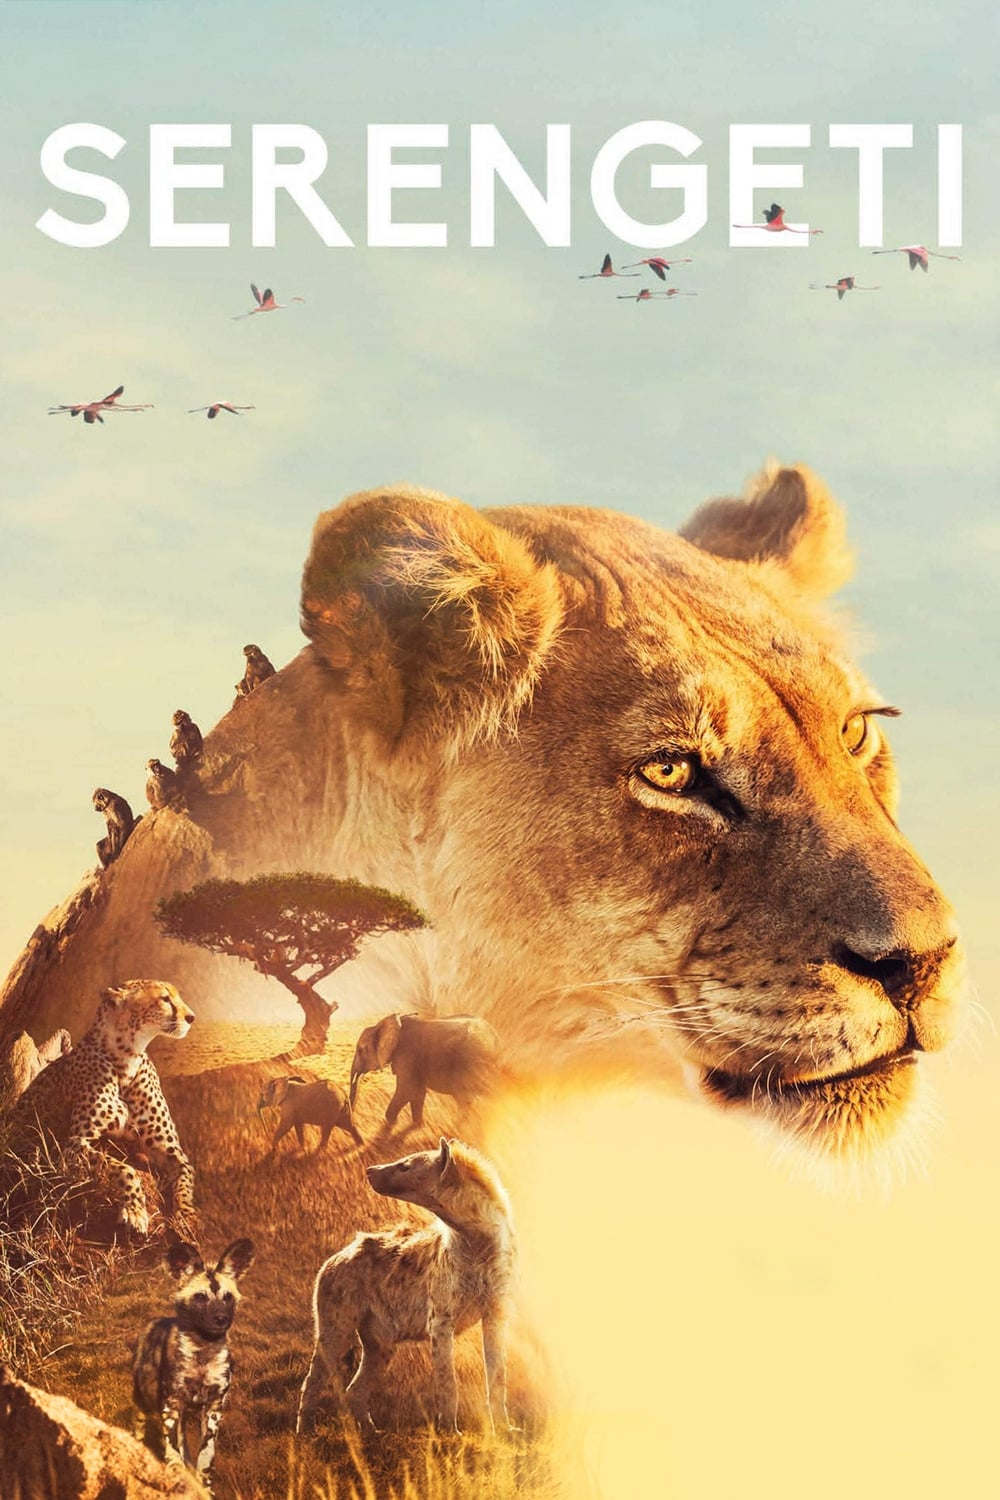 Serengeti TV Shows About Nature Documentary